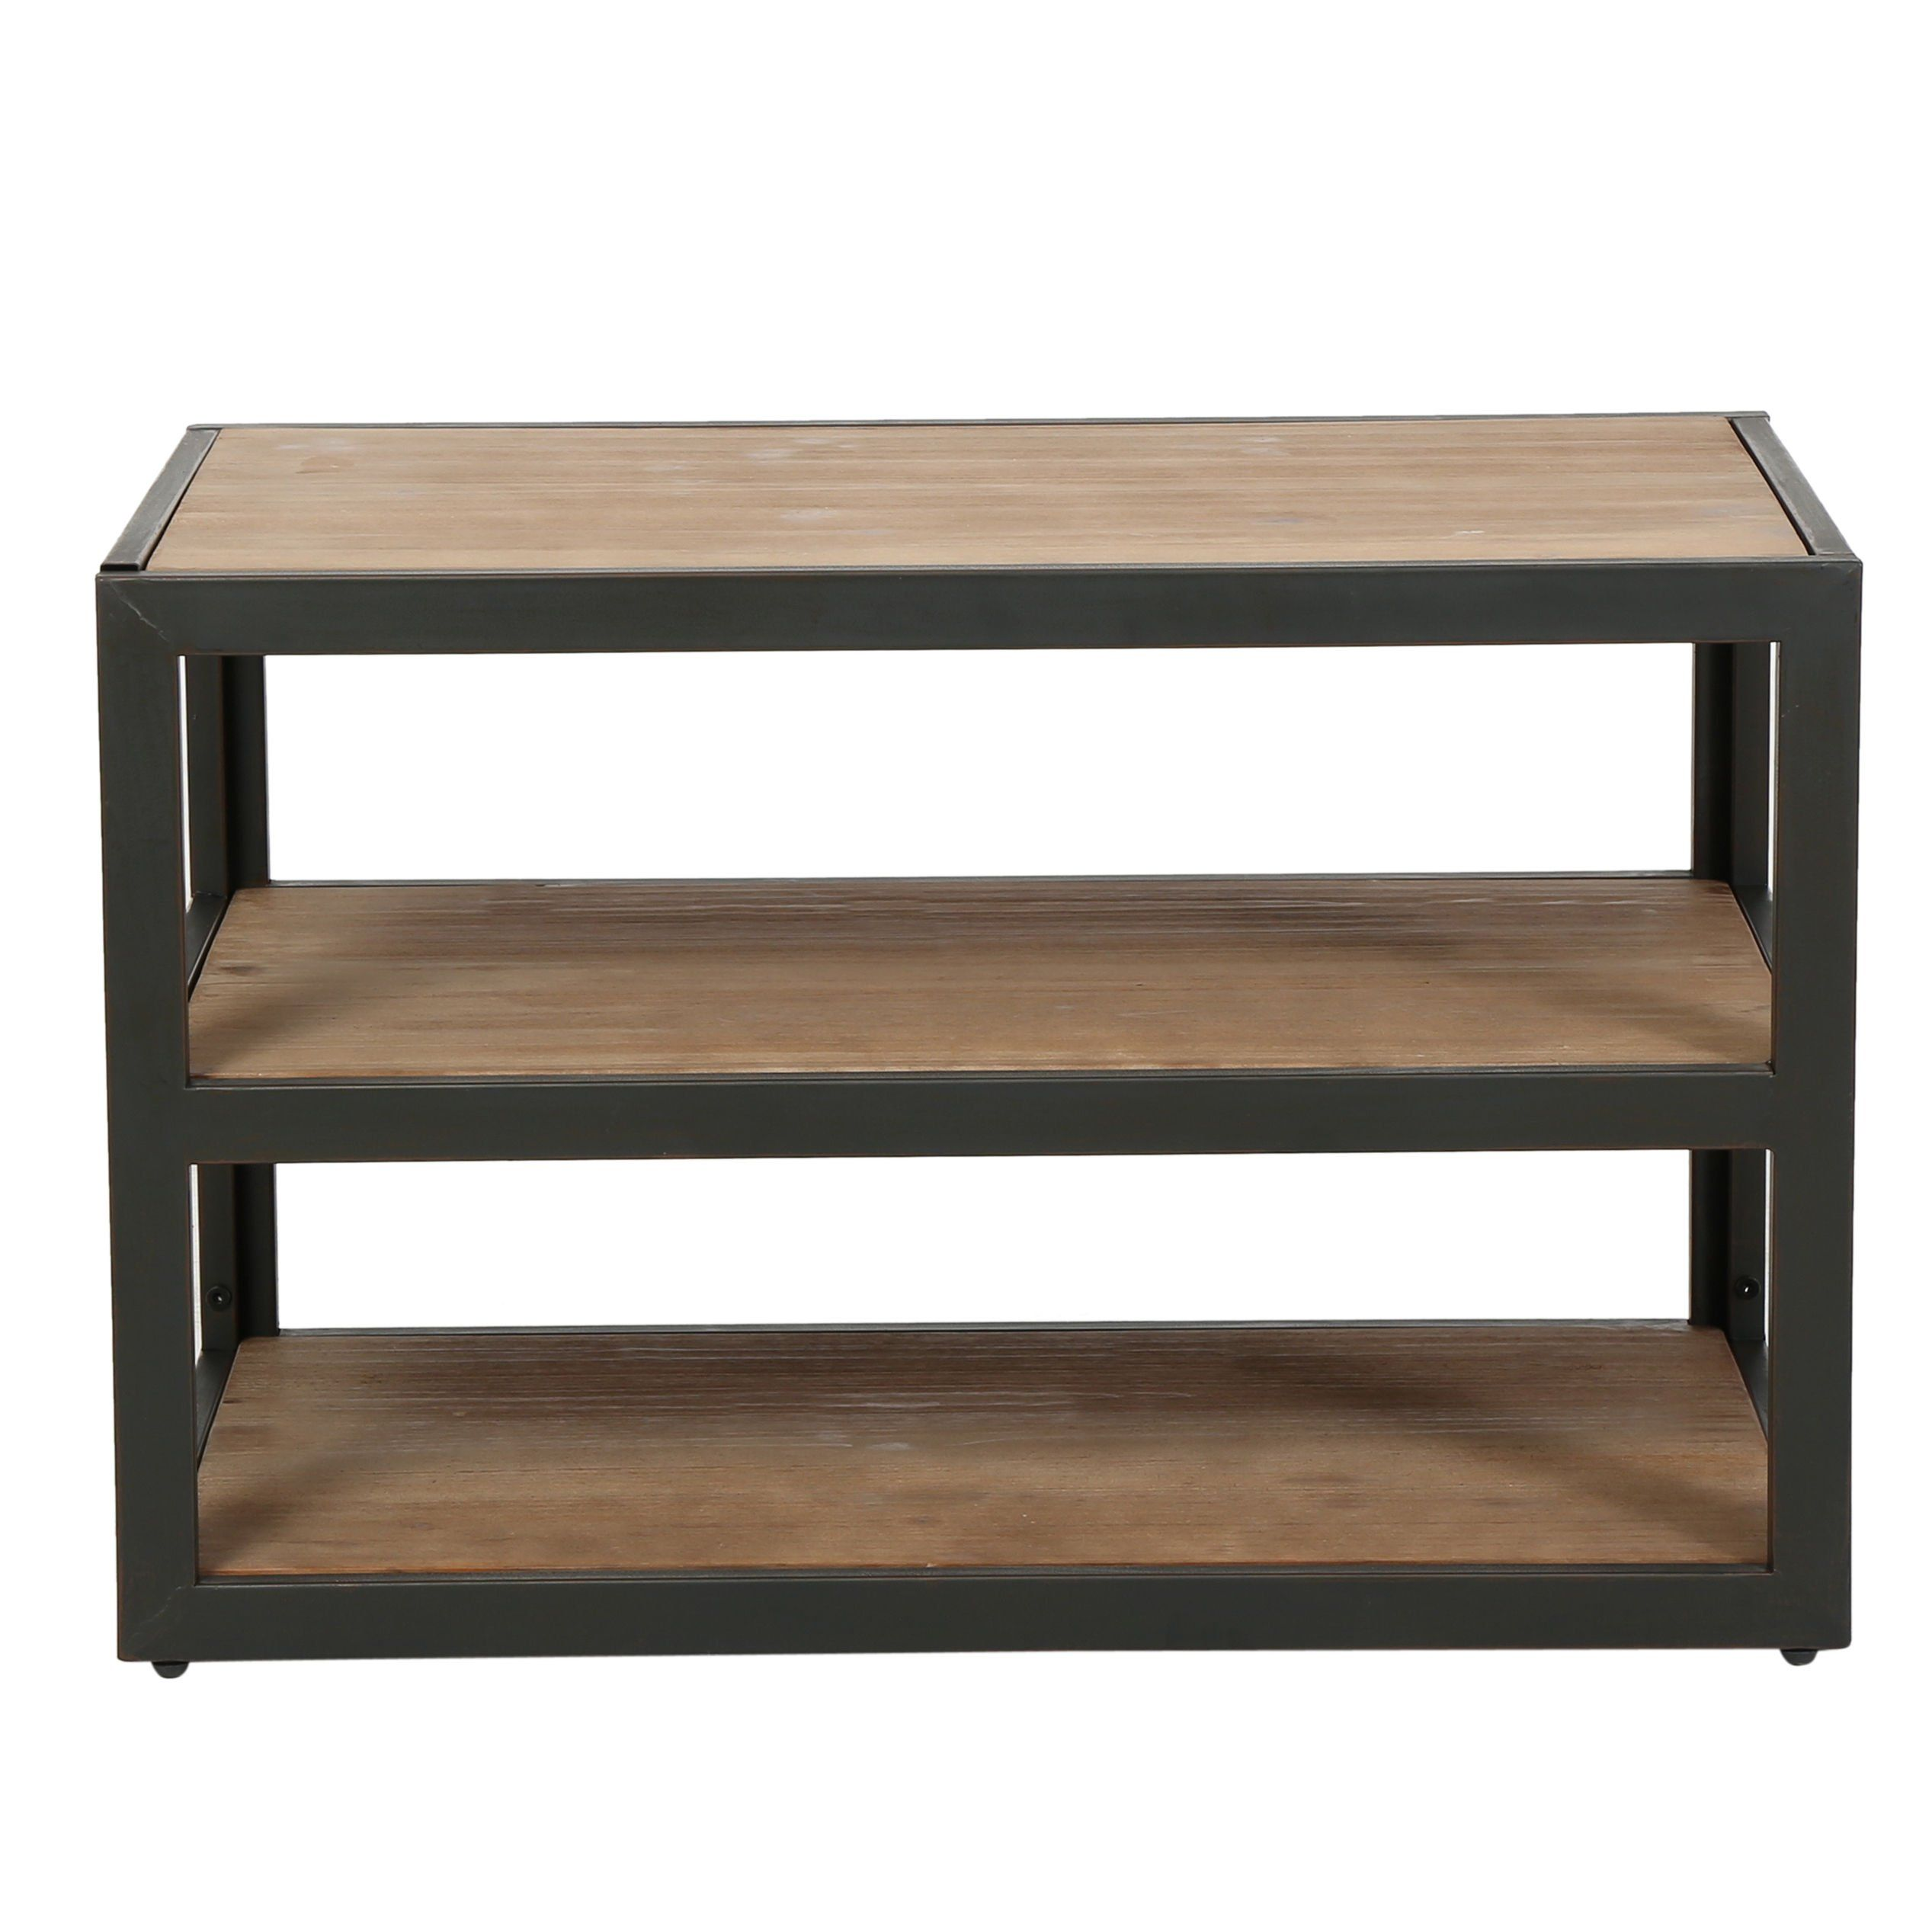 Modern Industrial Rustic Brown 3-Shelves Rectangle Shaped TV Stand Media Console | Wooden Top and Black Metal Frame, Living Room Decor - Includes ModHaus Living Pen